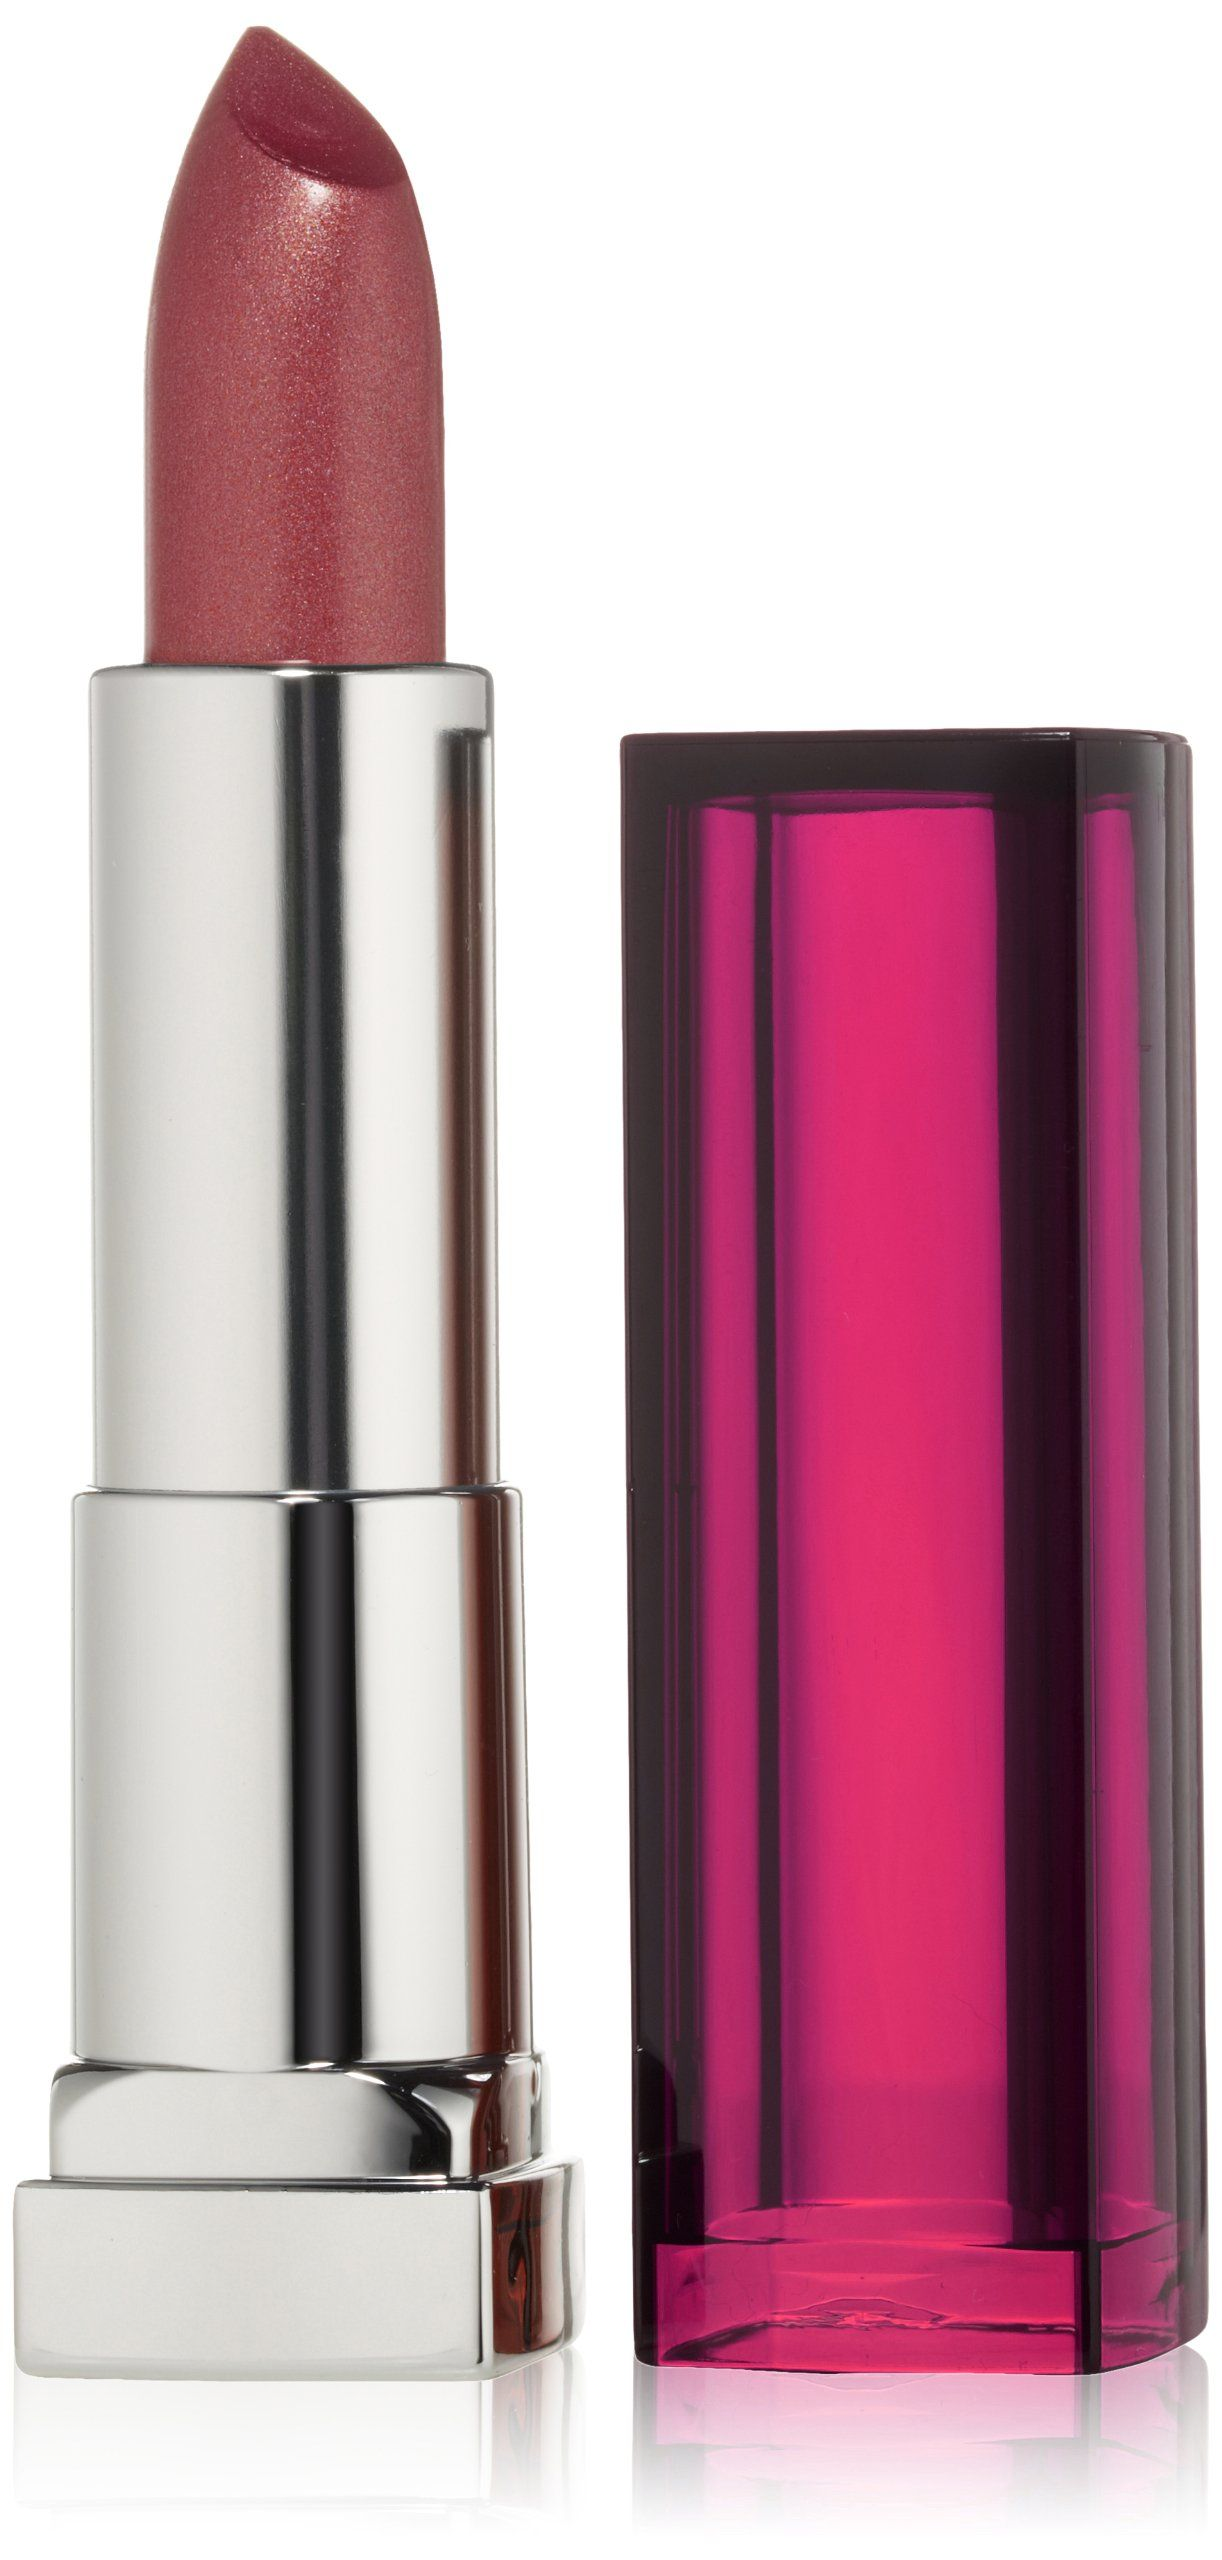 Maybelline New York ColorSensational Lipcolor, Party Pink